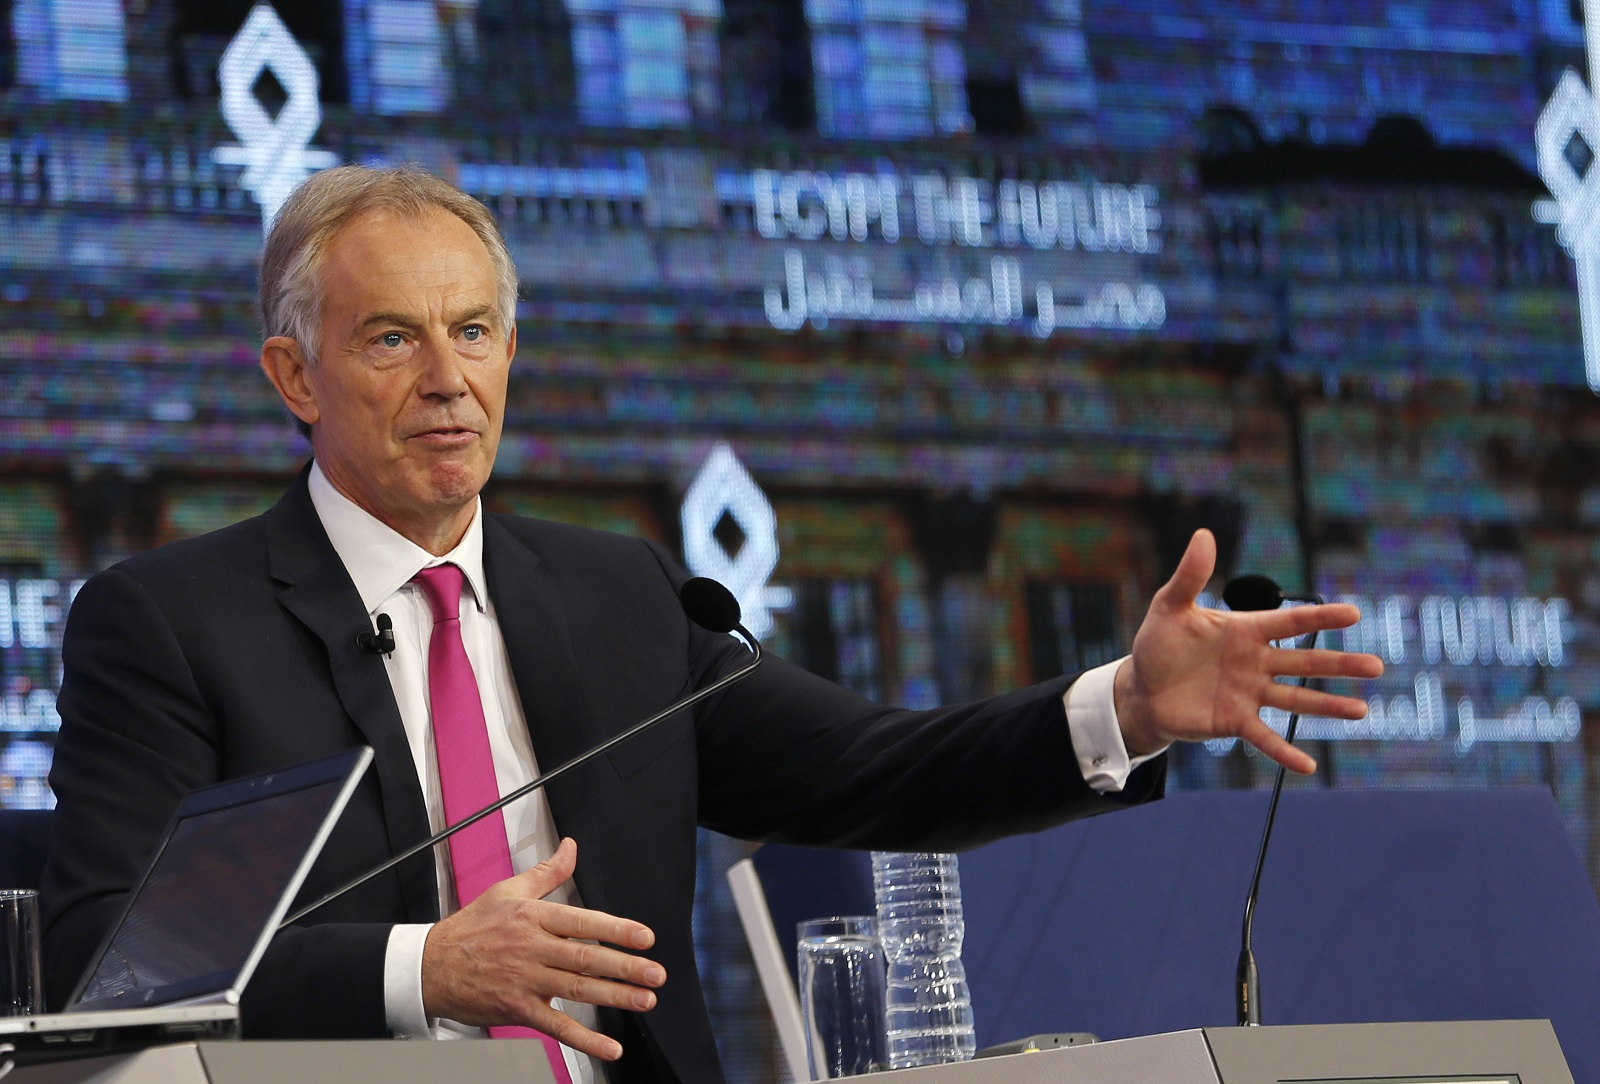 Tony Blair to head anti-Semitism body